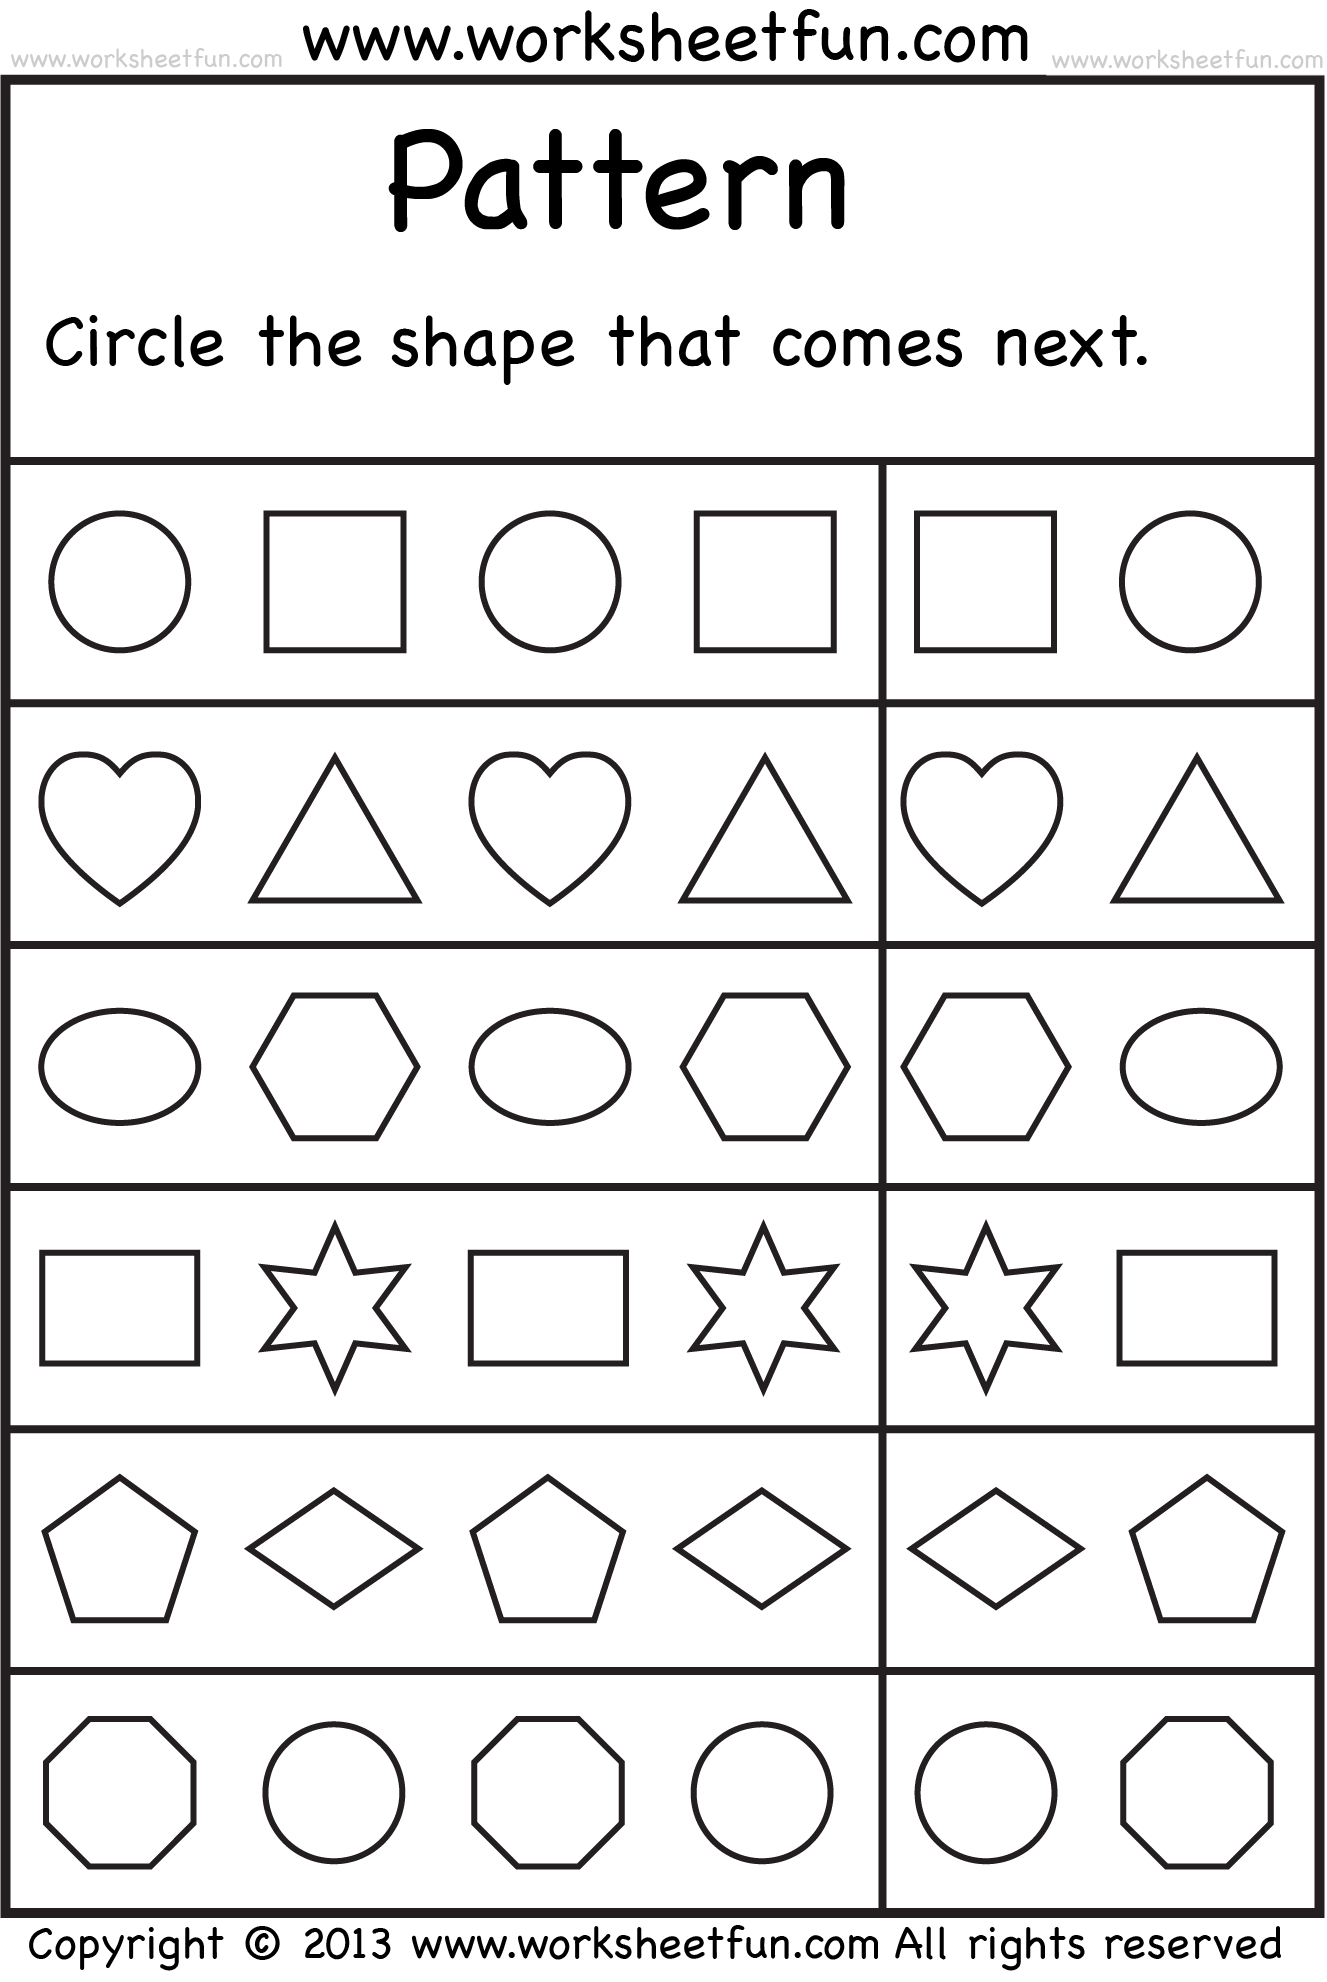 Proatmealus  Gorgeous  Images About School Worksheets On Pinterest  Number Words  With Hot  Images About School Worksheets On Pinterest  Number Words Alphabet Worksheets And Free Printable Kindergarten Worksheets With Cool Free Grade One Worksheets Also Worksheet On Proper Nouns In Addition Root Words Worksheets Rd Grade And Les Animaux Worksheet As Well As Grade  Subtraction Worksheets Additionally Trace The Line Worksheets From Pinterestcom With Proatmealus  Hot  Images About School Worksheets On Pinterest  Number Words  With Cool  Images About School Worksheets On Pinterest  Number Words Alphabet Worksheets And Free Printable Kindergarten Worksheets And Gorgeous Free Grade One Worksheets Also Worksheet On Proper Nouns In Addition Root Words Worksheets Rd Grade From Pinterestcom